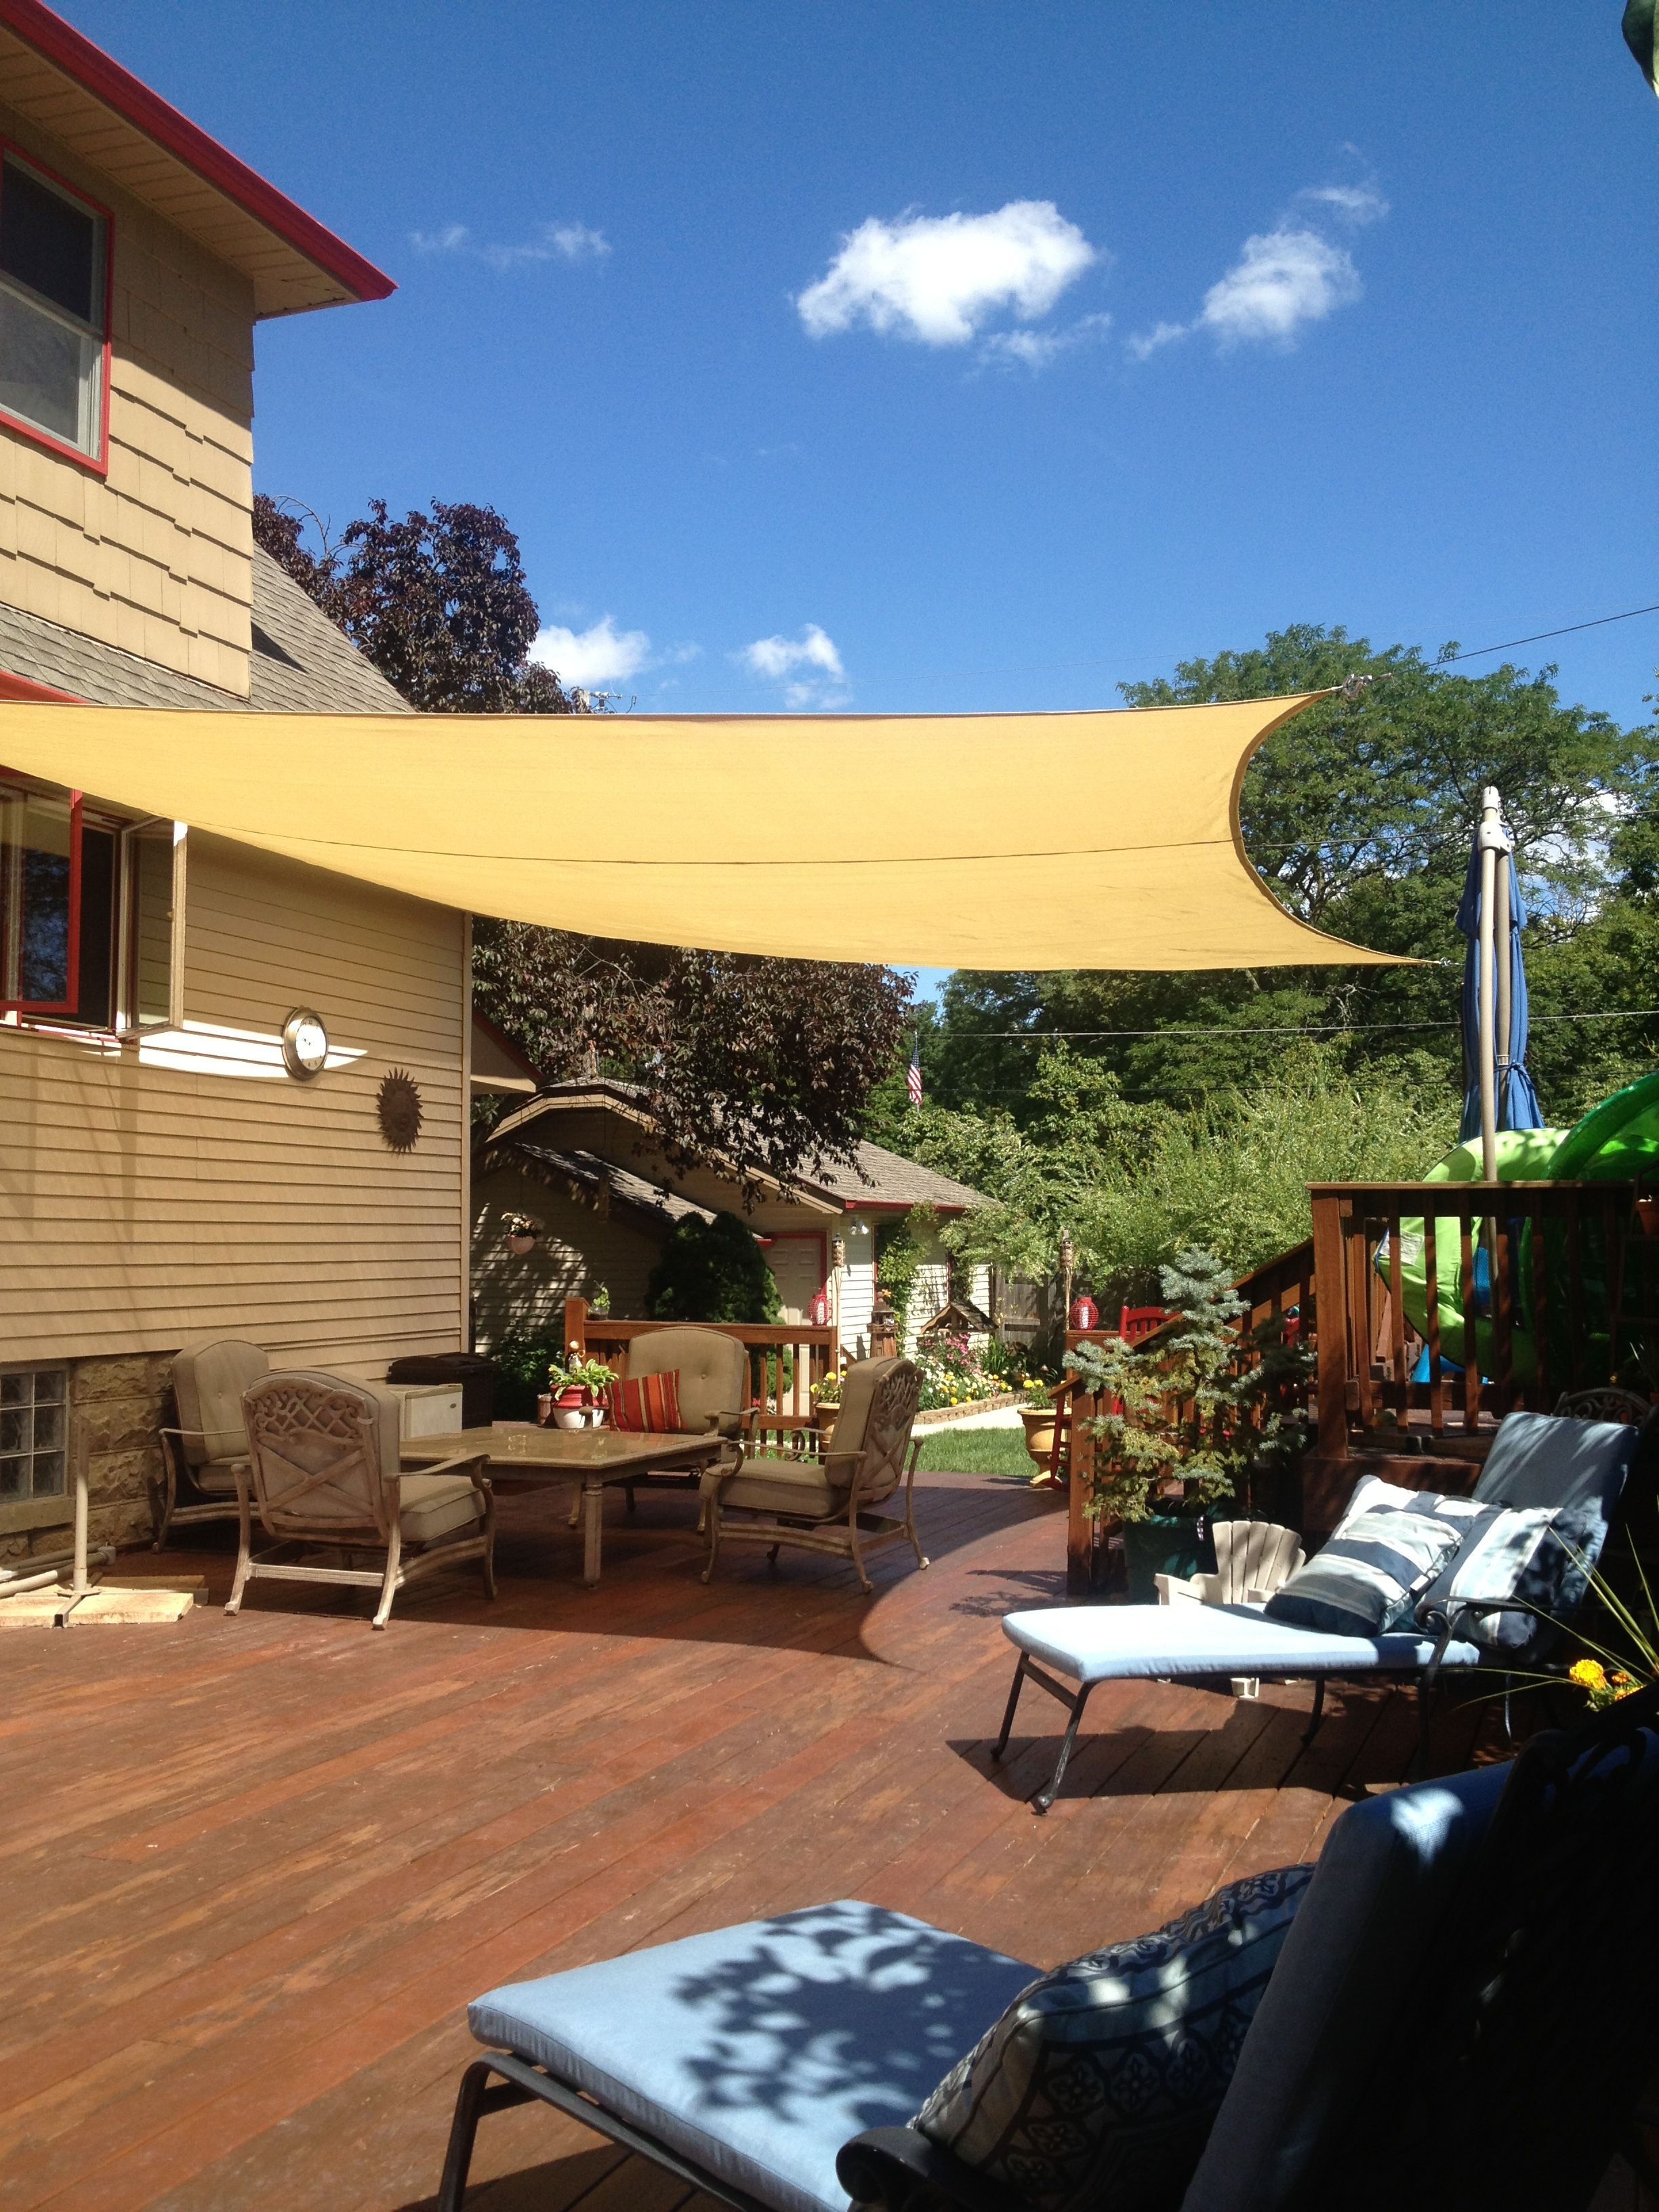 steel posts for shade sails on sail shade for deck that extends off house 18 x18 attached to hand crafted steel post no future rust issue and or bowing steel deck shade patio backyard pinterest